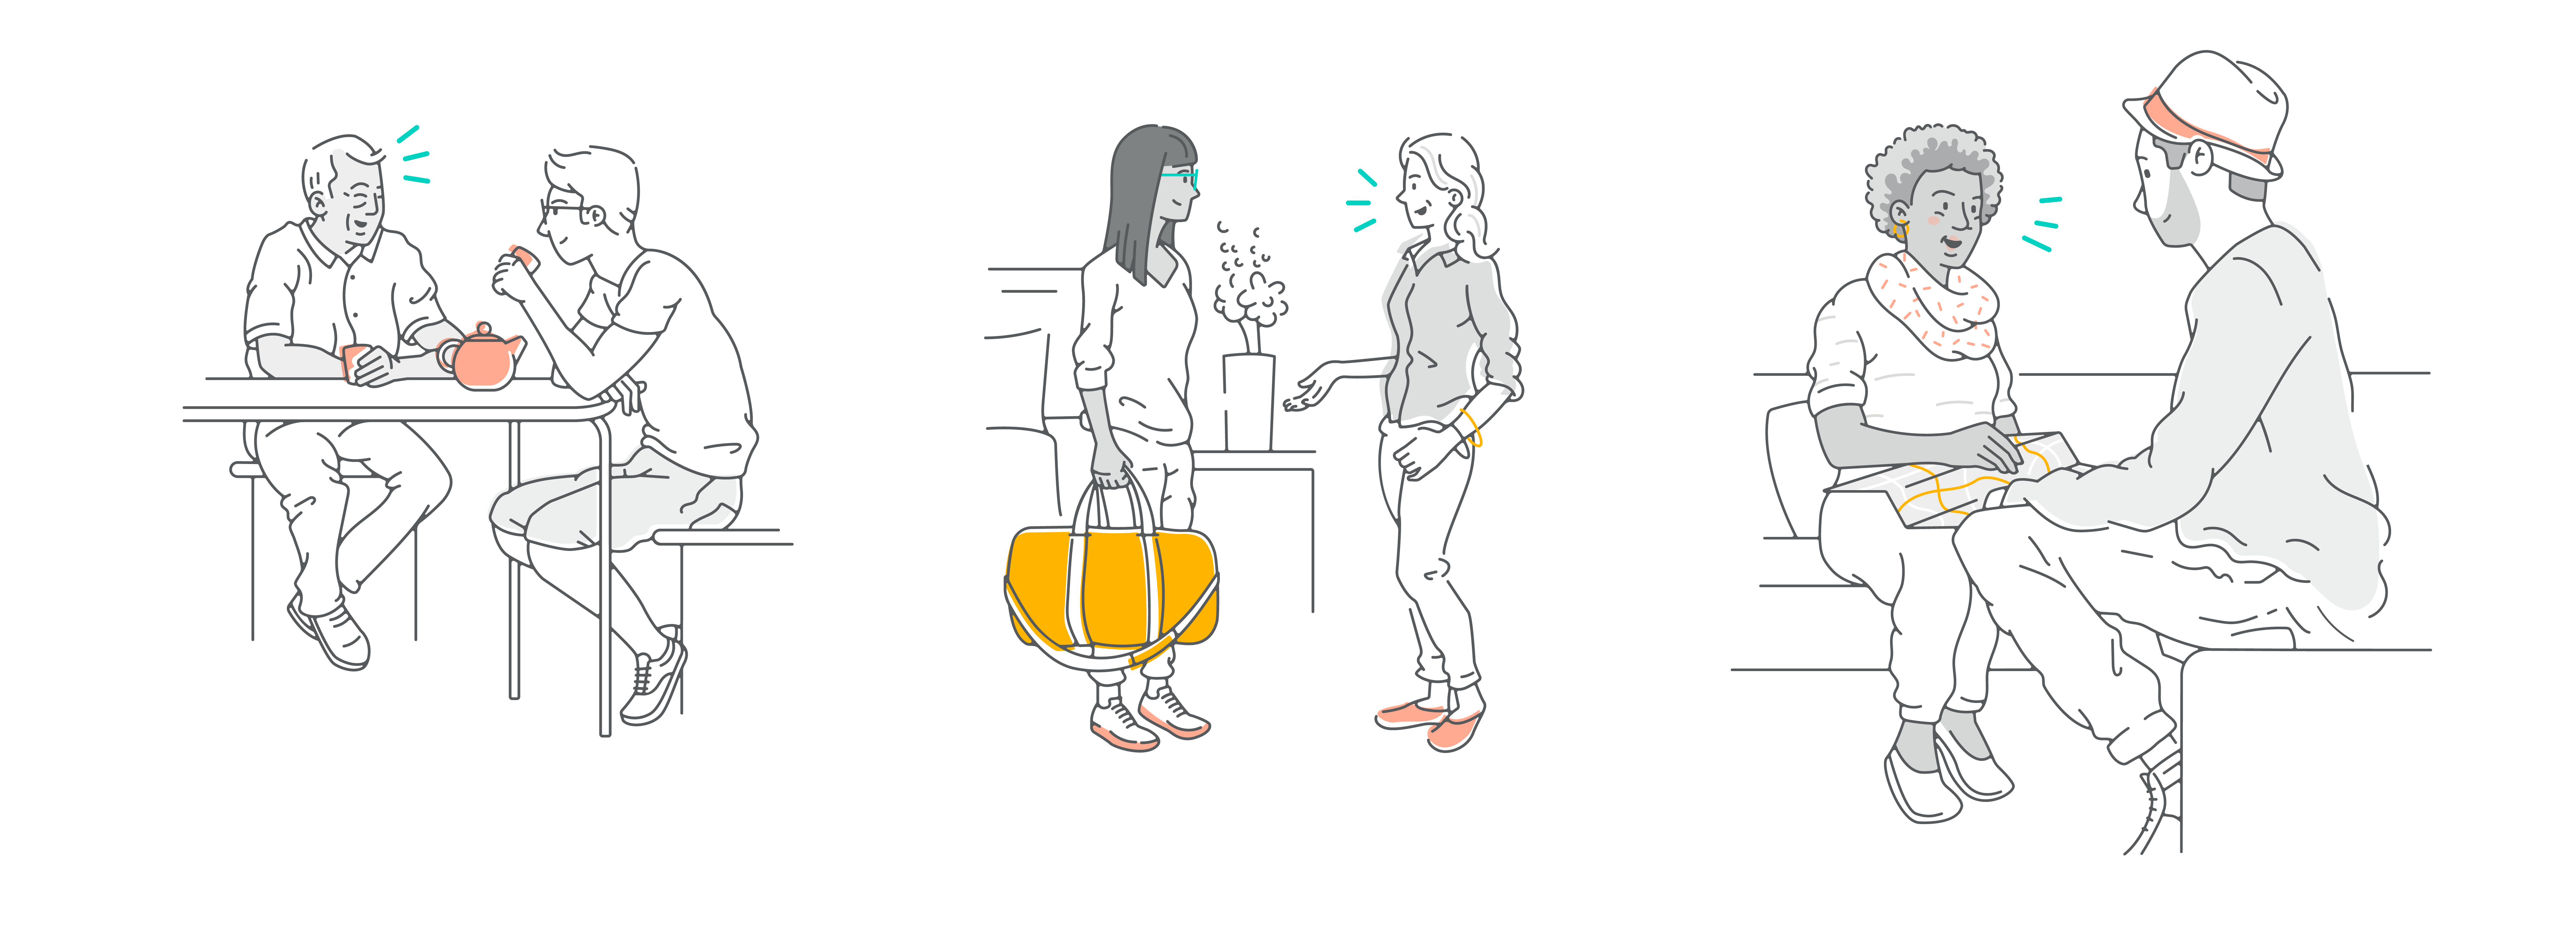 airbnb-illustrations-wide.png